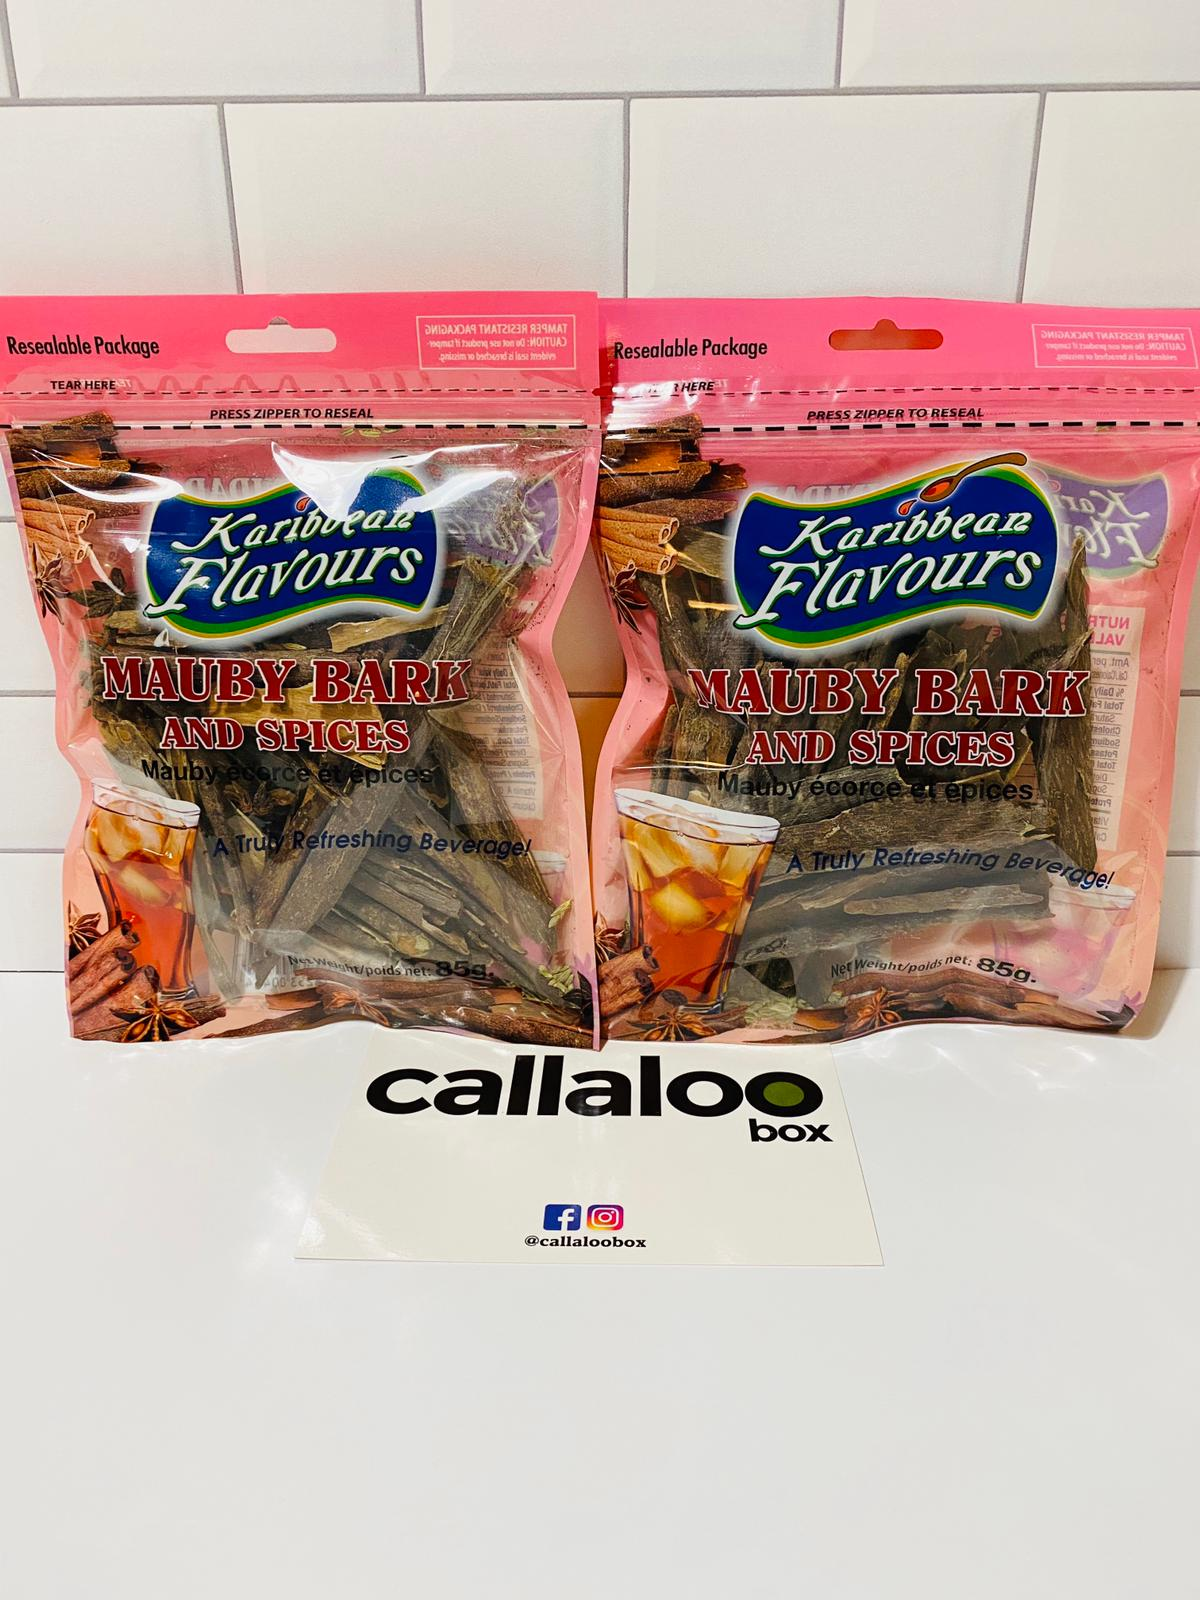 Callaloo Box Trinidad and Tobago Subscription Box Caribbean Online Grocery_Karibbean Flavours Mauby Bark & Spices_Single